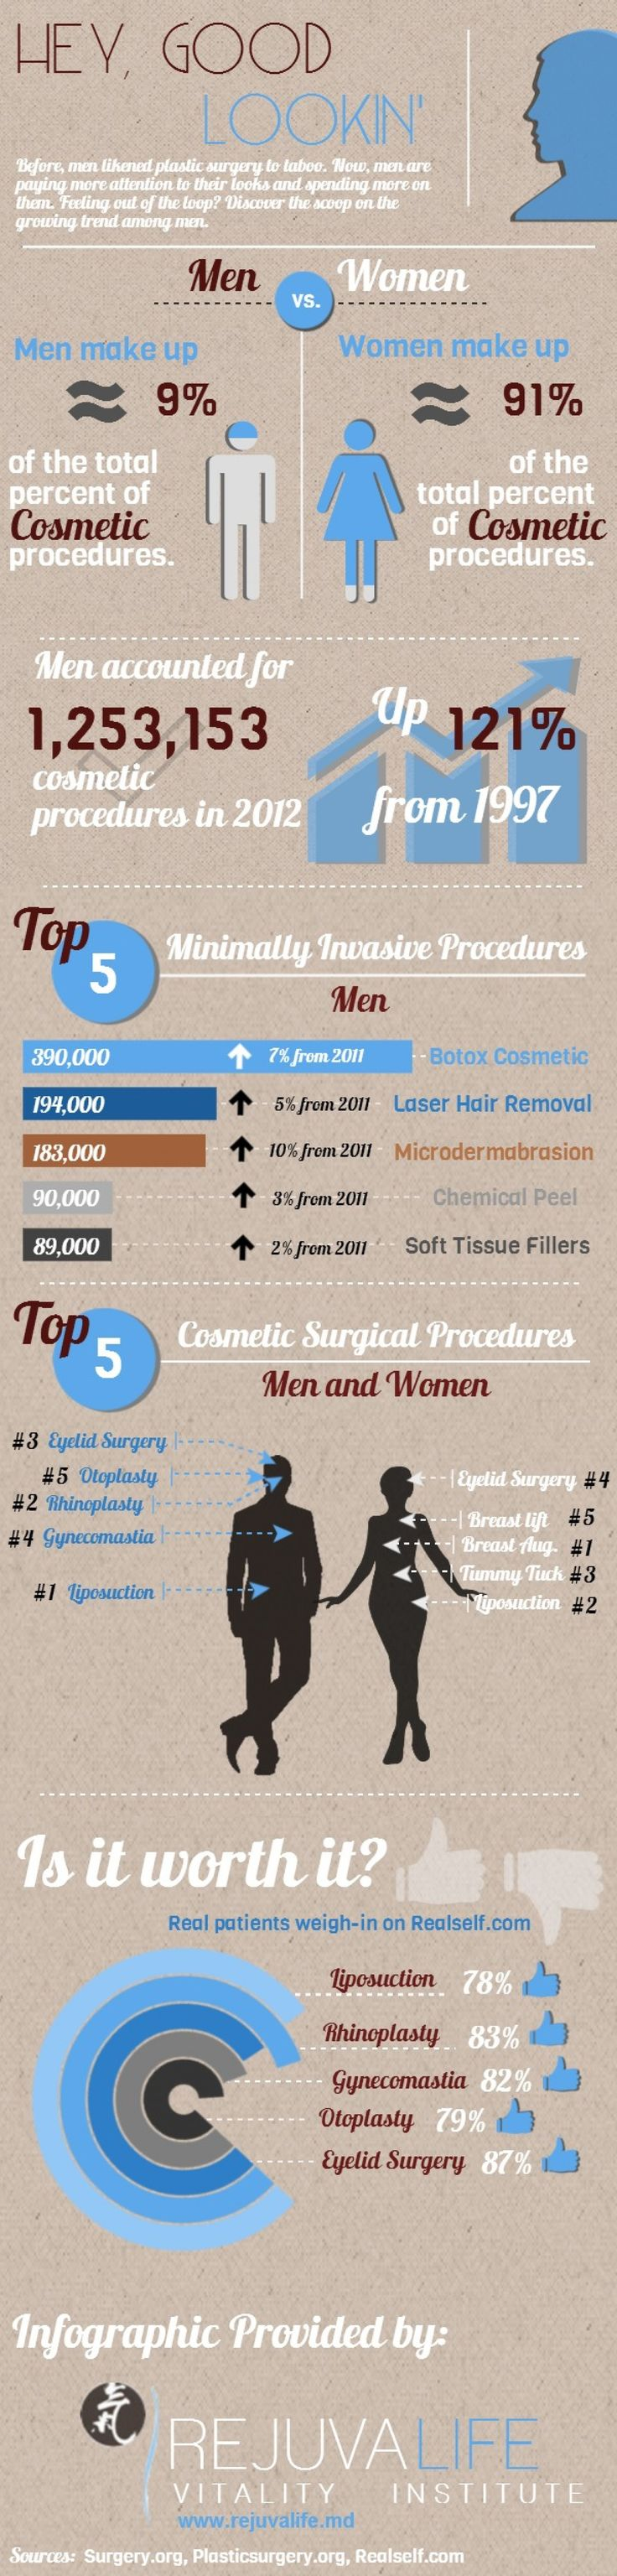 how to become a cosmetic surgeon in australia